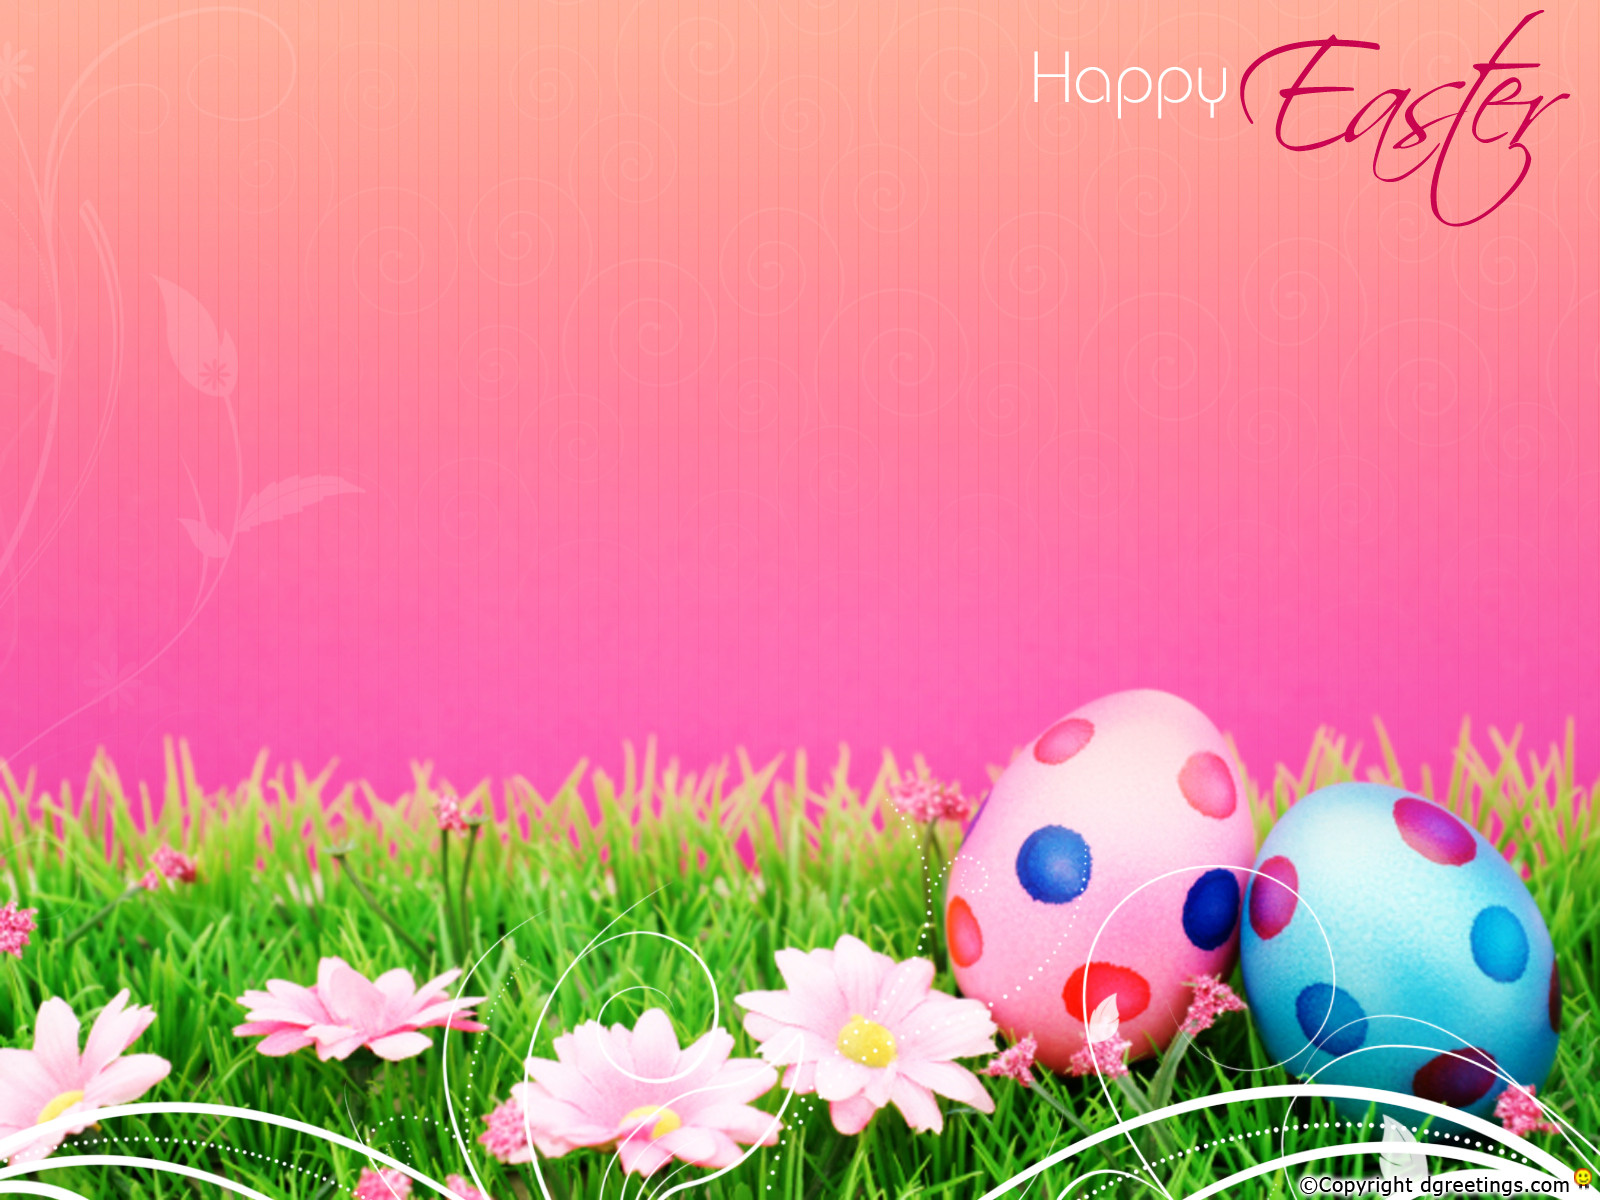 Cute Easter Backgrounds Images amp Pictures   Becuo 1600x1200